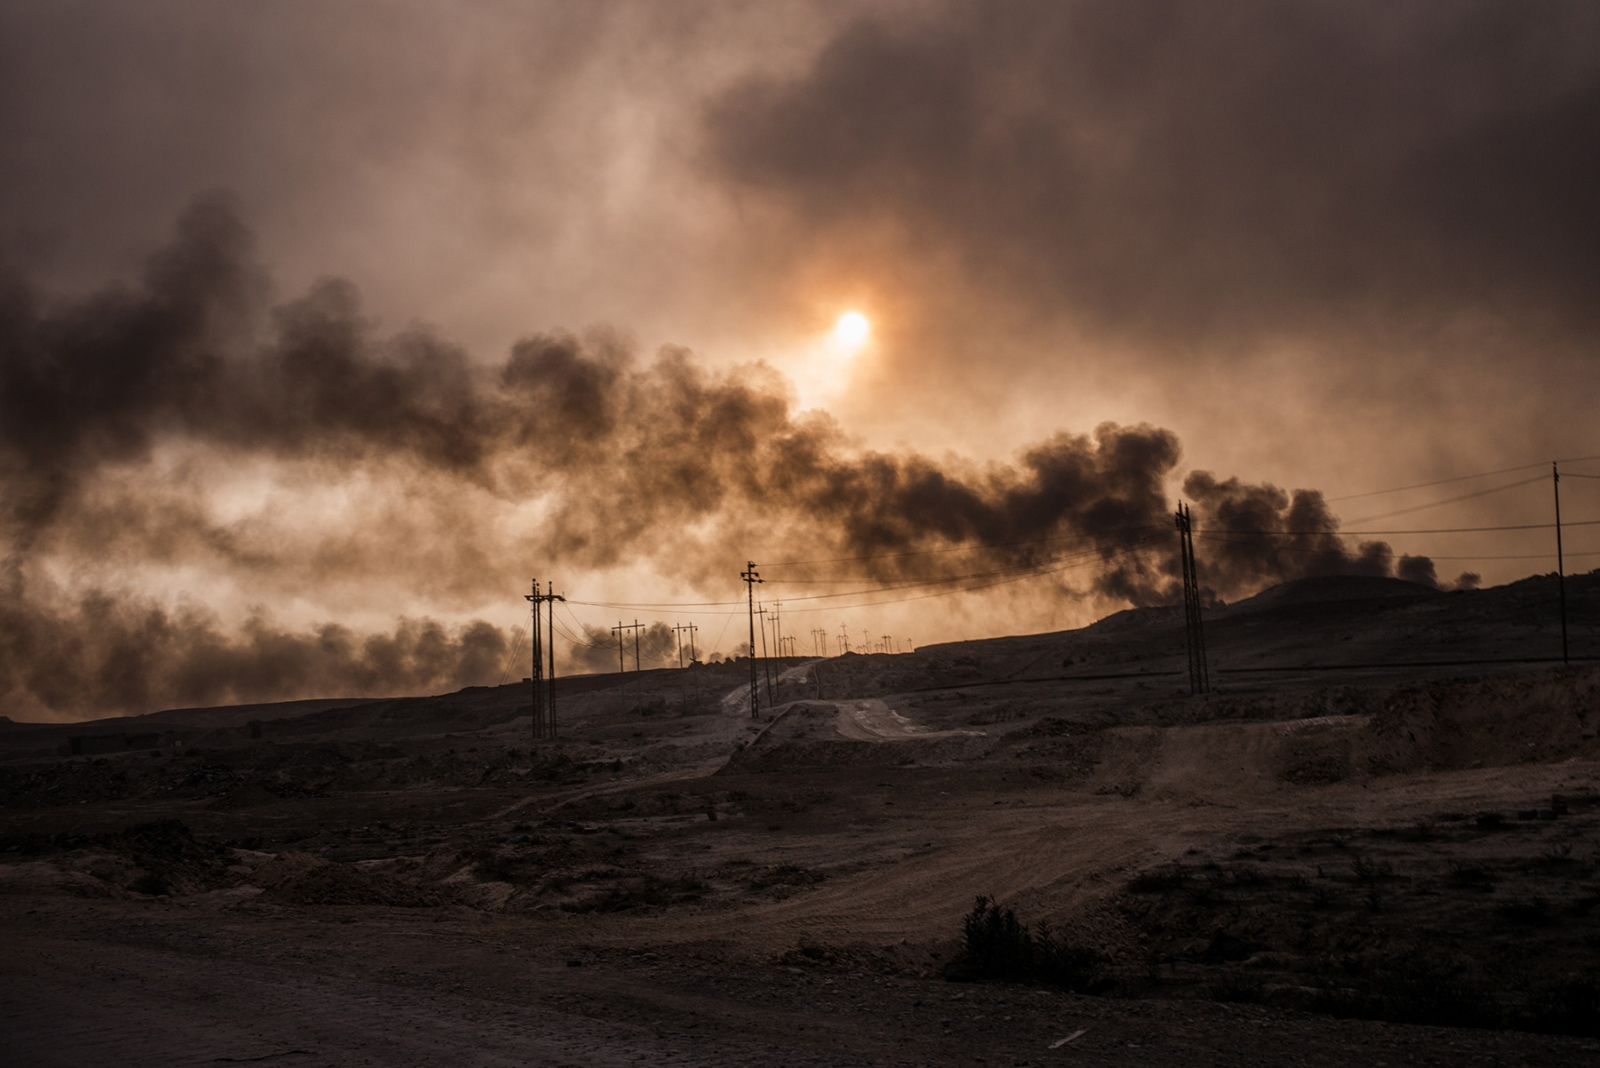 Oil wells burn in Qayyarah, Iraq, November 2016. Many streets and neighborhoods in Qayyarah look apocalyptic, with oil residue covering all surfaces, turning small streets into muddy oil slicks, yet children can still be seen everywhere playing outside. Dozens of oil wells were set on fire as ISIS fighters retreated from the Iraqi Army in August, before the start of the Mosul offensive last month. The oil from Qayyarah provided a huge source of income for ISIS to help finance its activities. Many civilians stayed in their homes during the fight to retake the town and remain there today despite the months of smoke clouds hanging over the town.